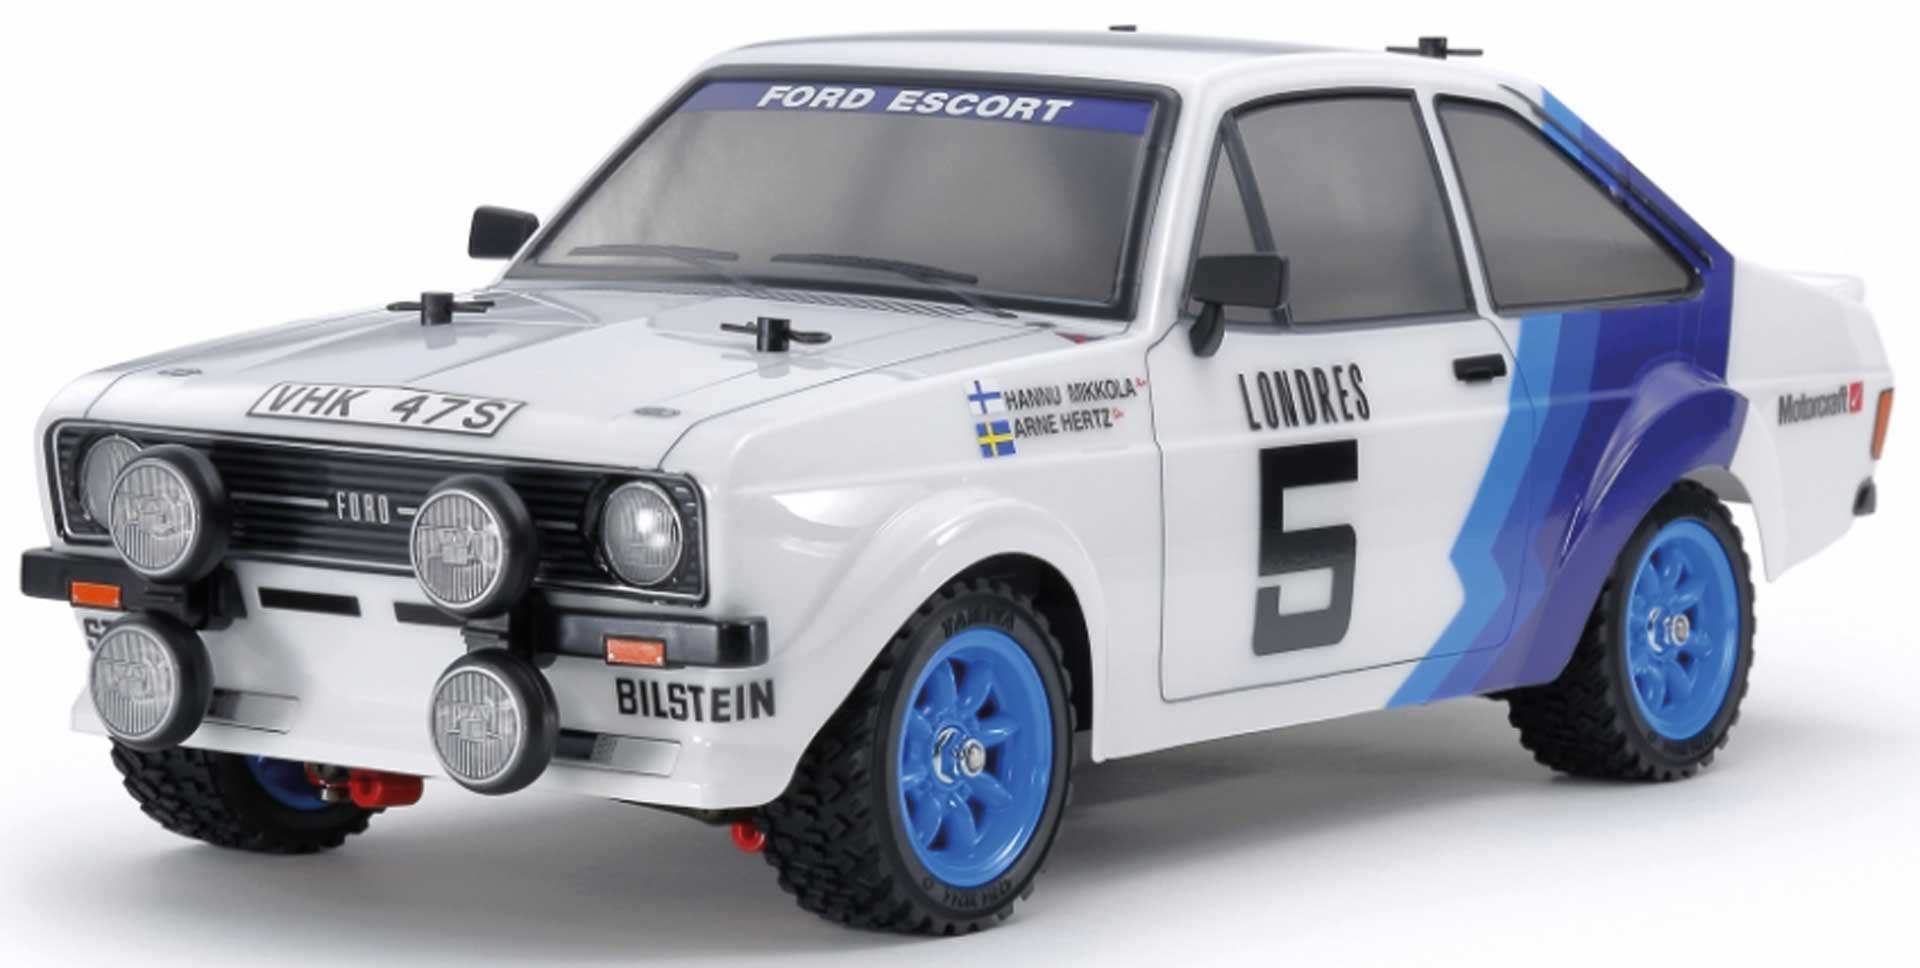 TAMIYA Ford Escort MkII Rallye MF-01X 1/10 4WD Kit (incl. painted body)